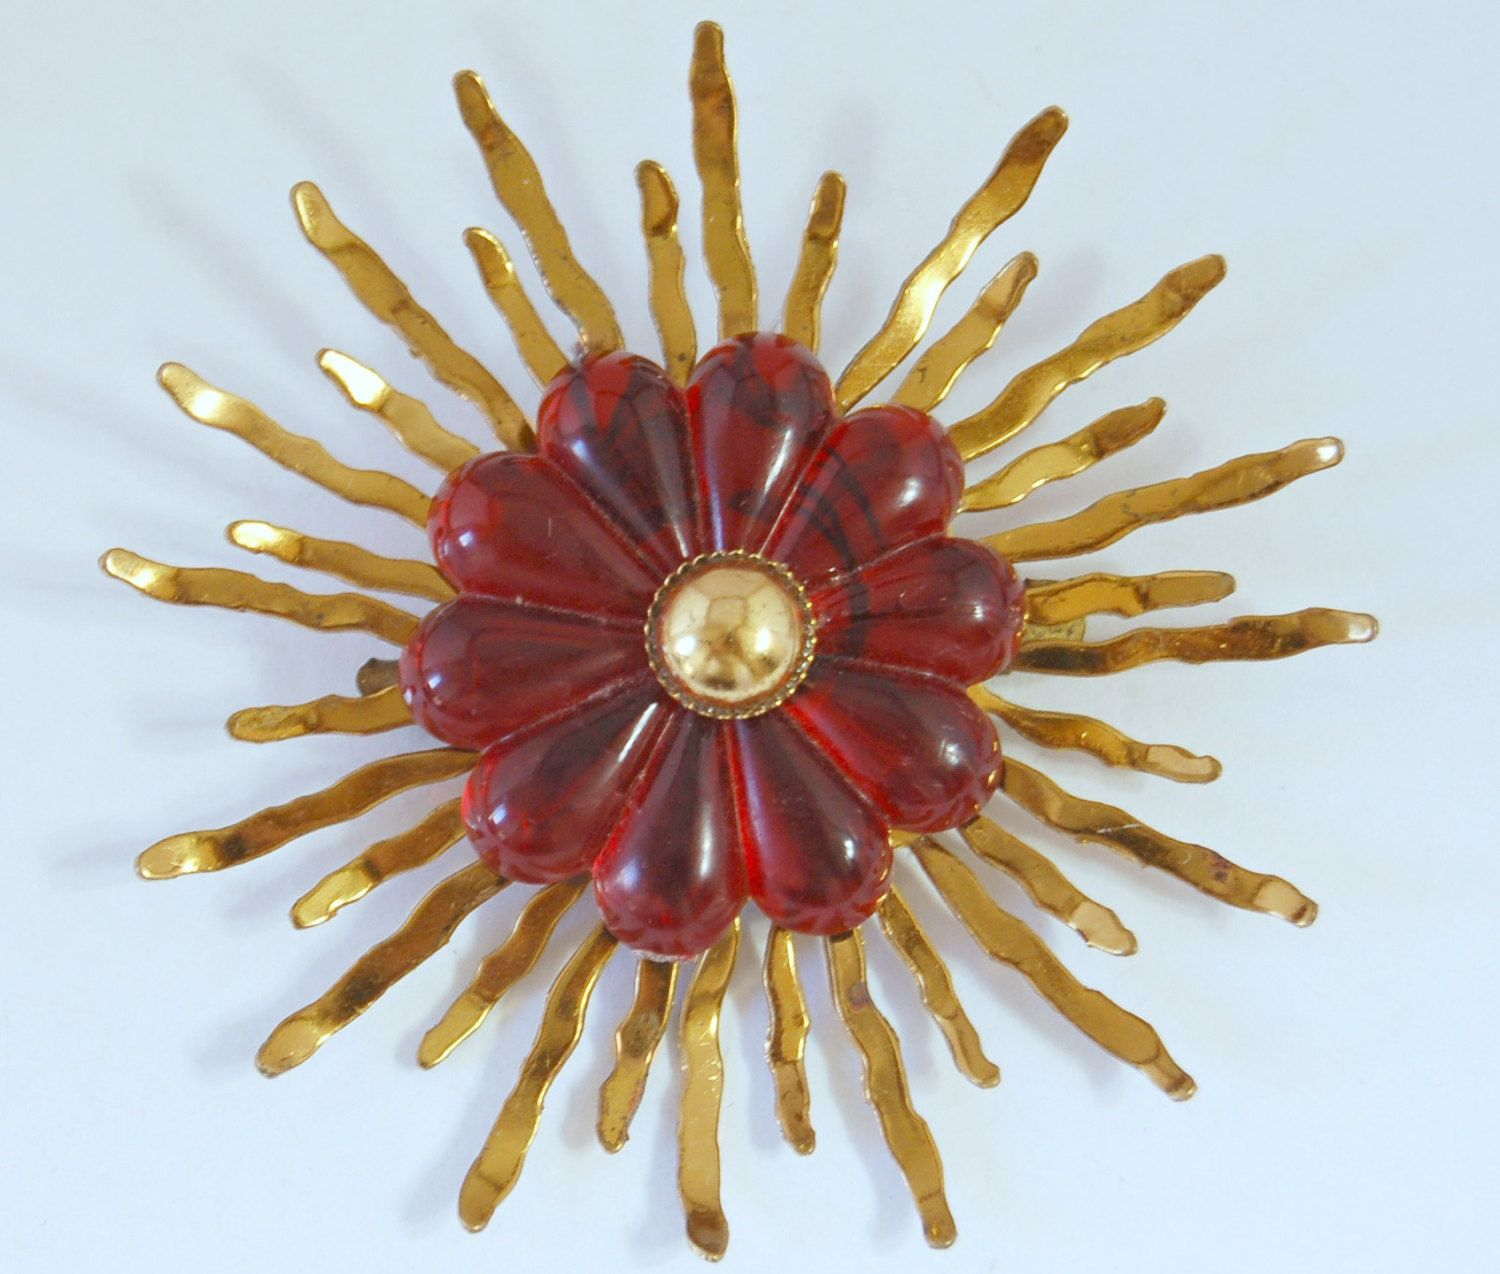 Spectacular 20's Art Deco brass & red celluloid starburst pin, fabulous red cellulose acetate on bright brass rays sunburst statement brooch by BetseysBeauties on Etsy